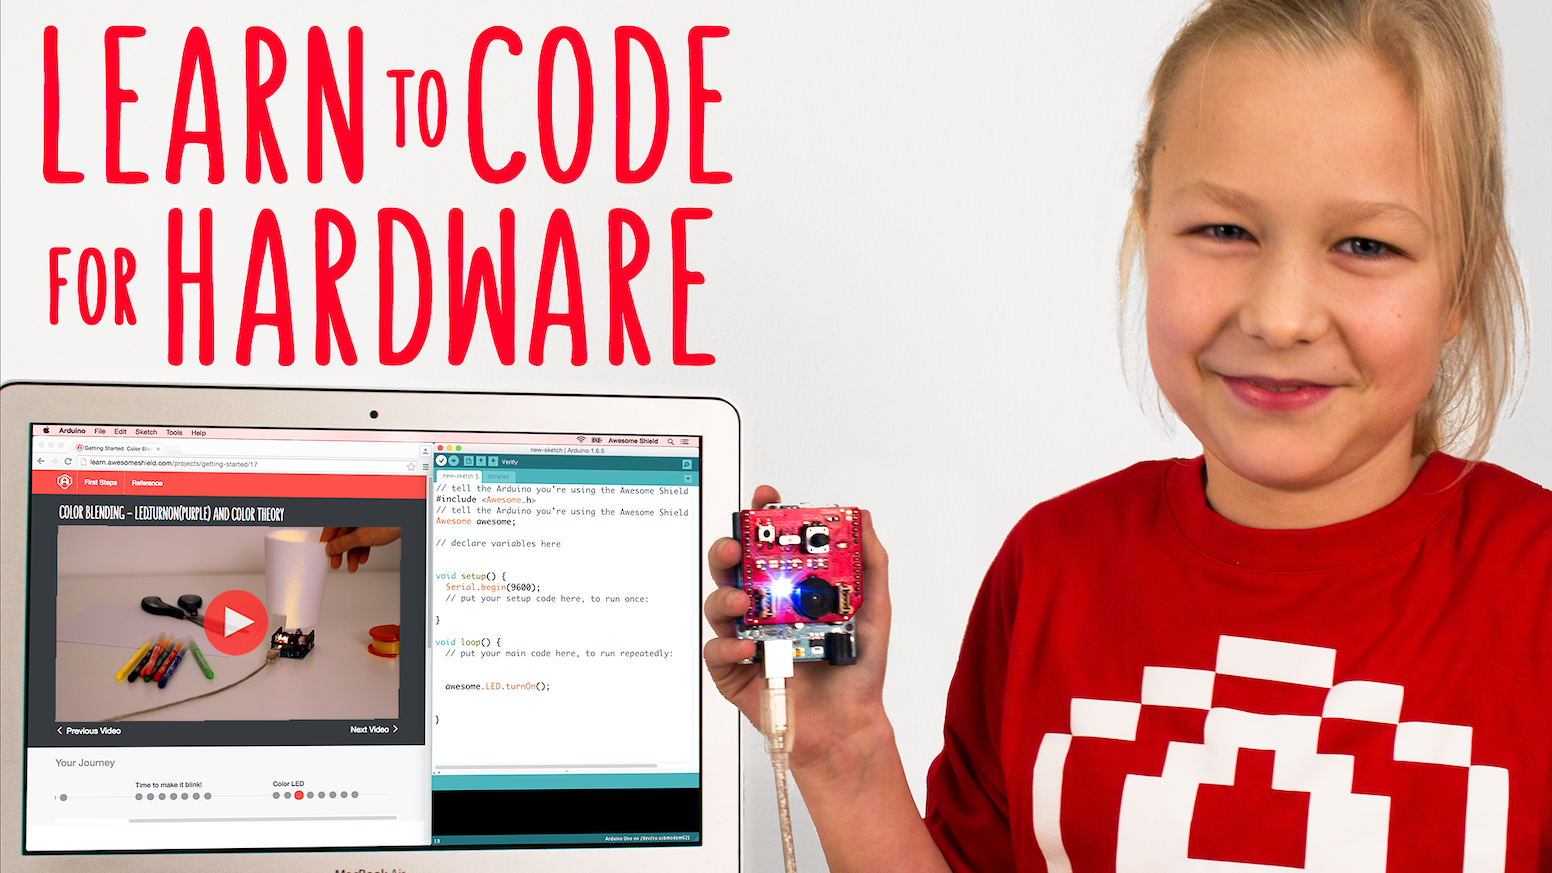 Awesome Shield teaches hands-on coding, powered by Arduino. For kids aged 10-100.